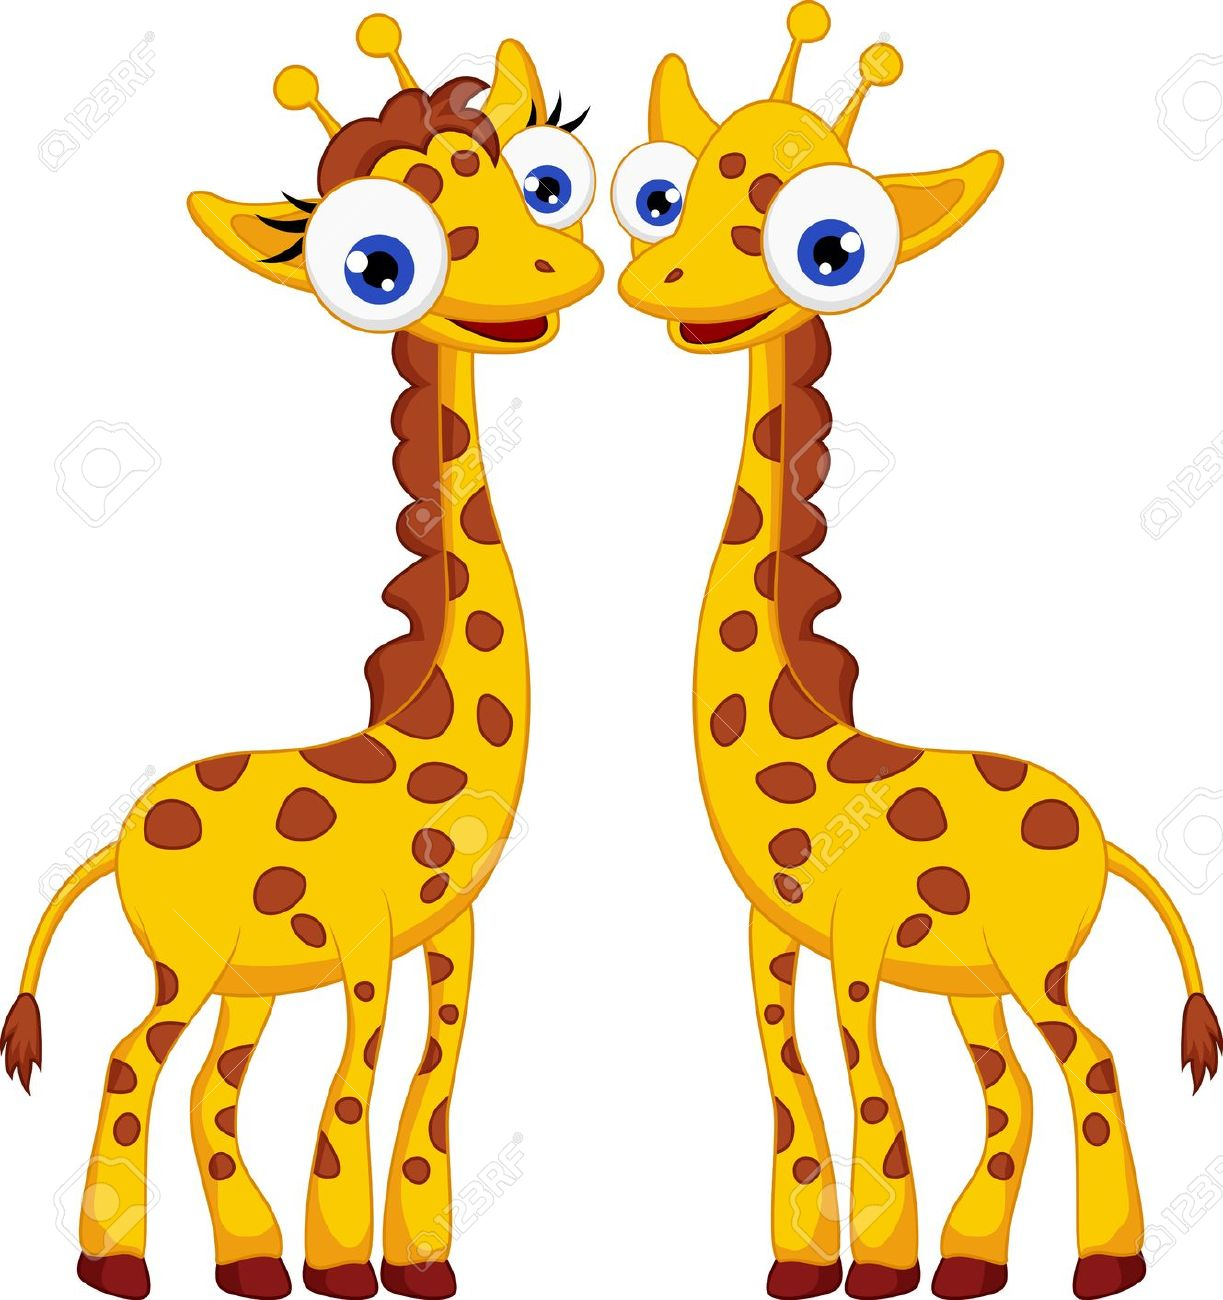 Giraffe Stock Vector Illustration And Royalty Free Giraffe Clipart.